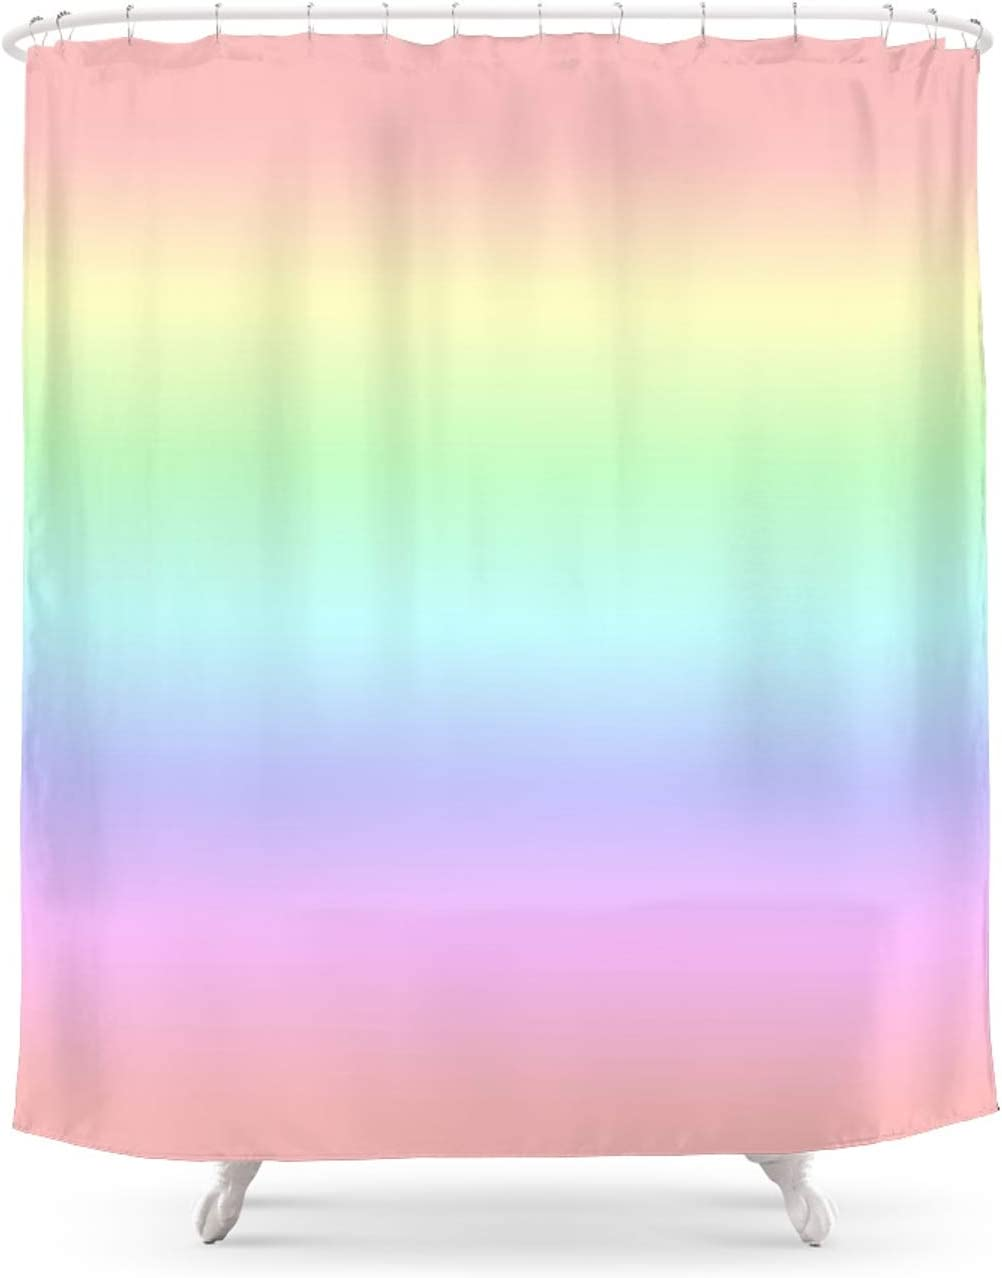 Soft Pastel Rainbow by Nataliecatlee on In a Rare popularity x 71